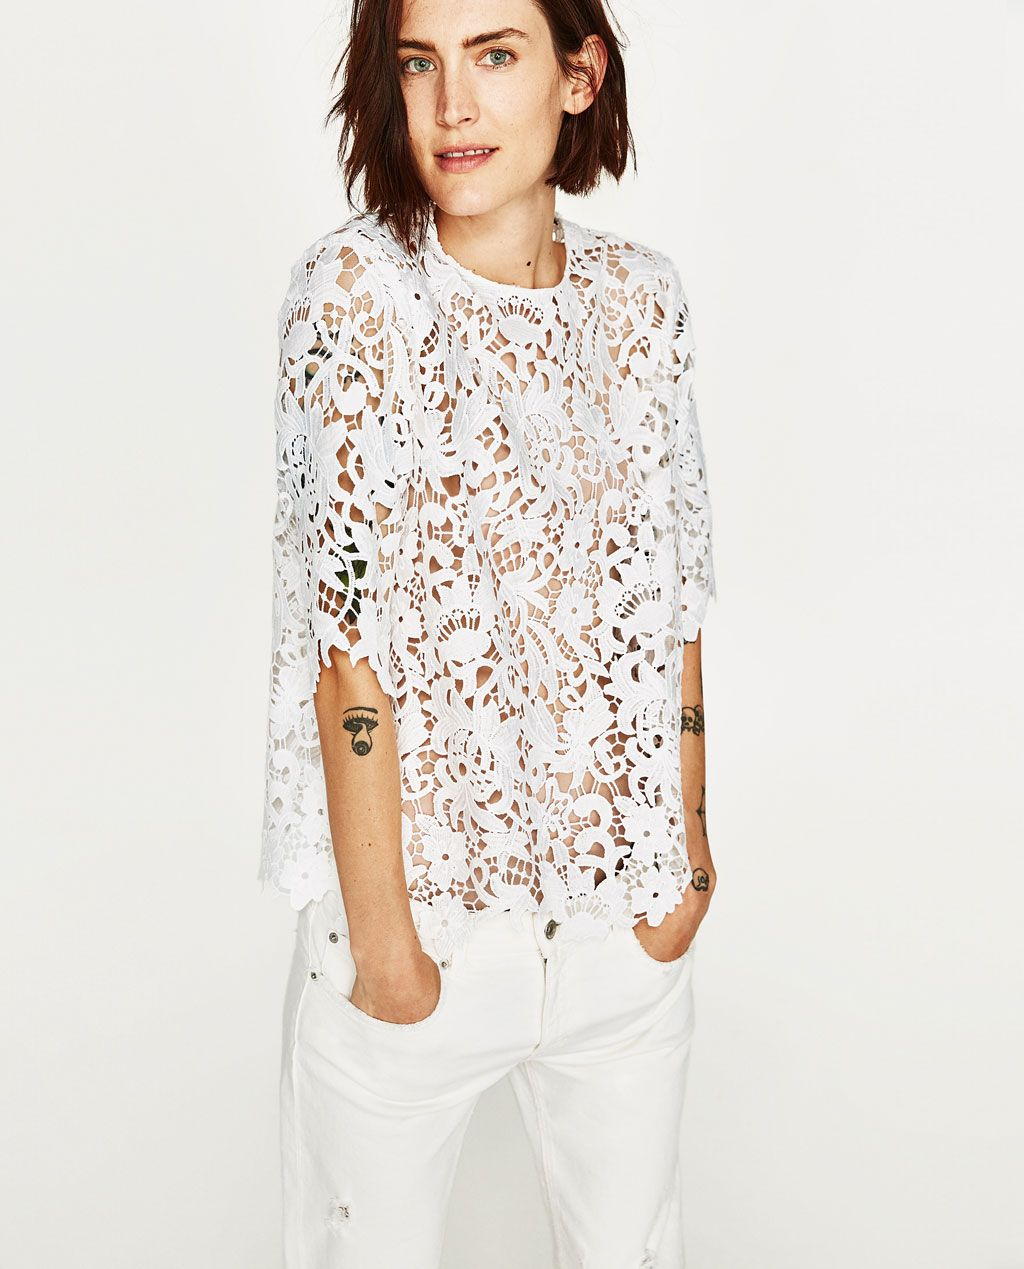 fb3c03dba371d LACE TOP-Blouses-TOPS-WOMAN